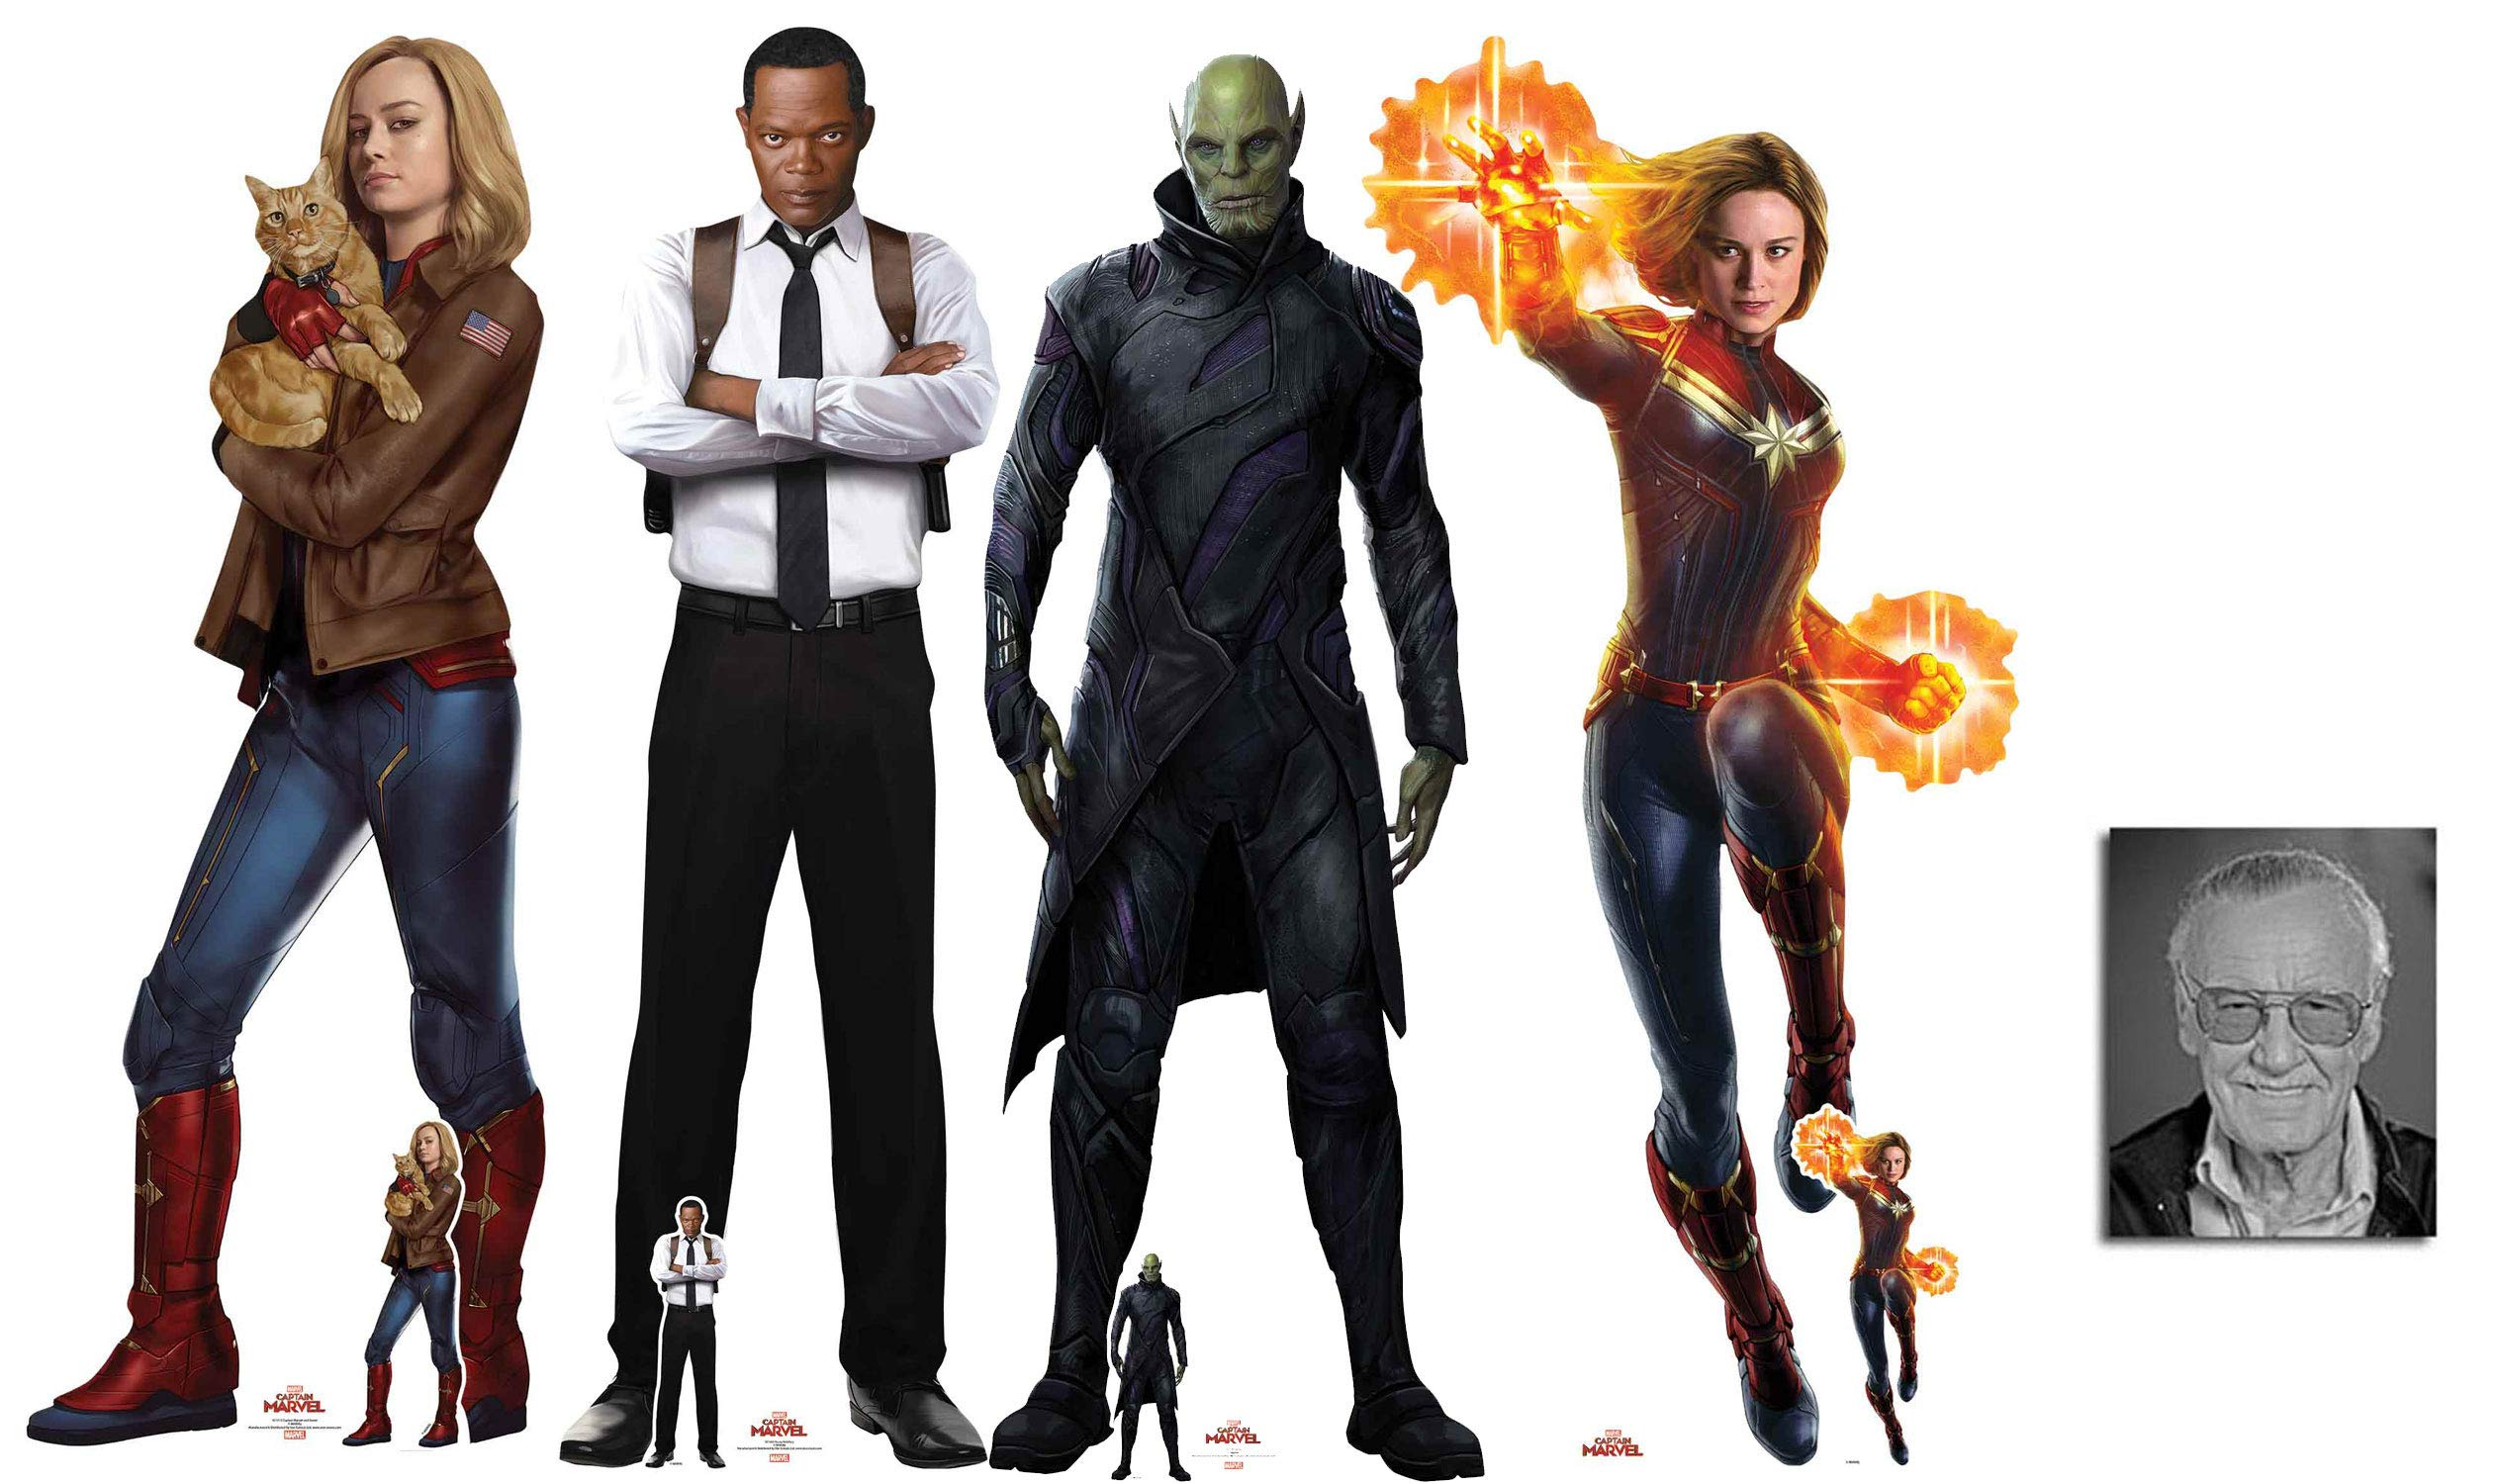 BundleZ-4-FanZ Fan Packs Captain Marvel Set of 4 Cardboard Cutouts with Carol Danvers & Goose, Young Nick Fury, Talos and Captain Marvel Includes Free Mini Cutouts and 8x10 Photo